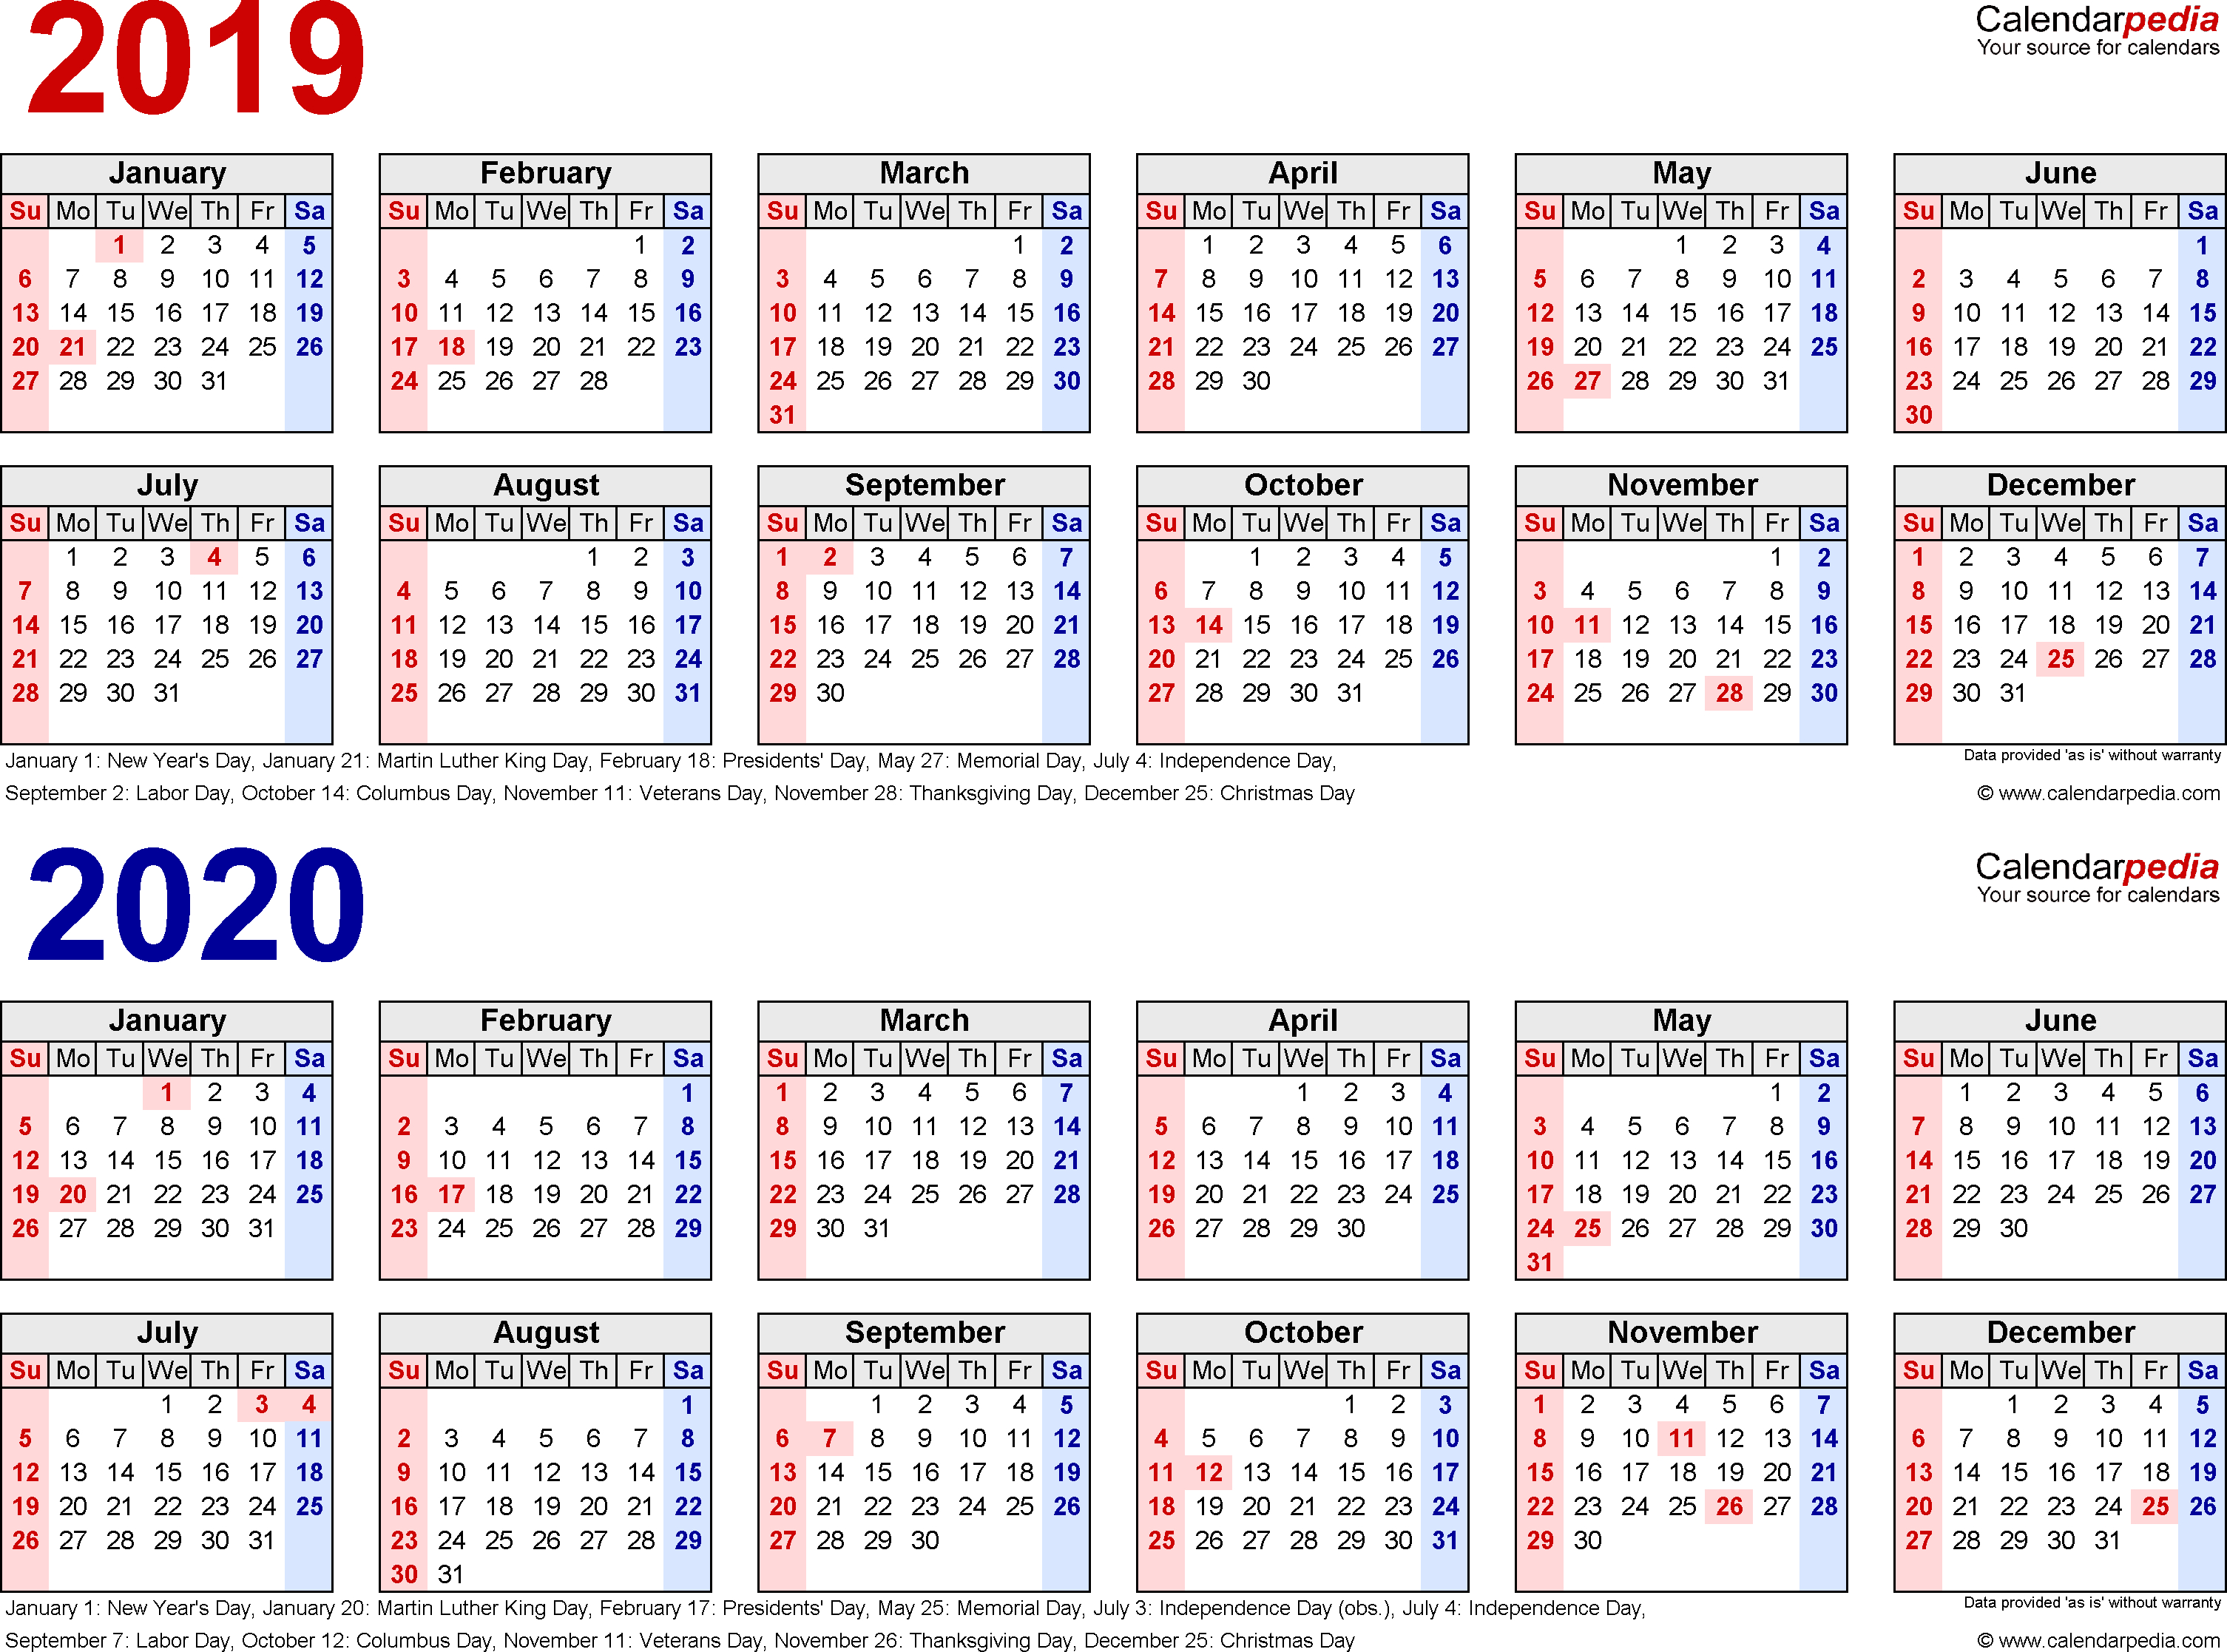 2019-2020 Calendar - Free Printable Two-Year Excel Calendars pertaining to Financial Calendar 2019/2020 With Week Numbers